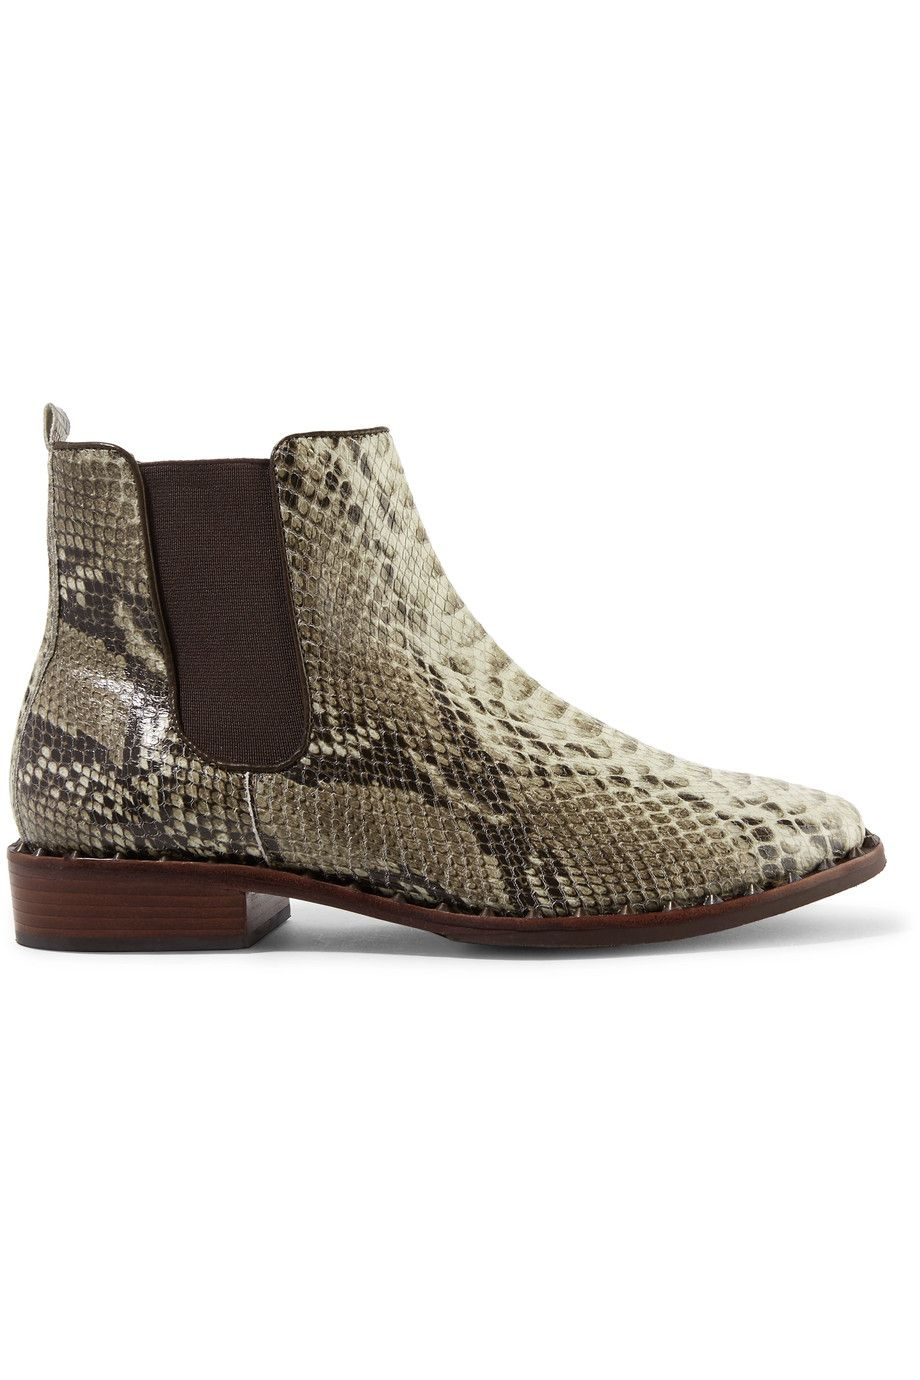 71e71180b SCHUTZ Shabba Embellished Snake-Effect Leather Ankle Boots. #schutz #shoes  #boots